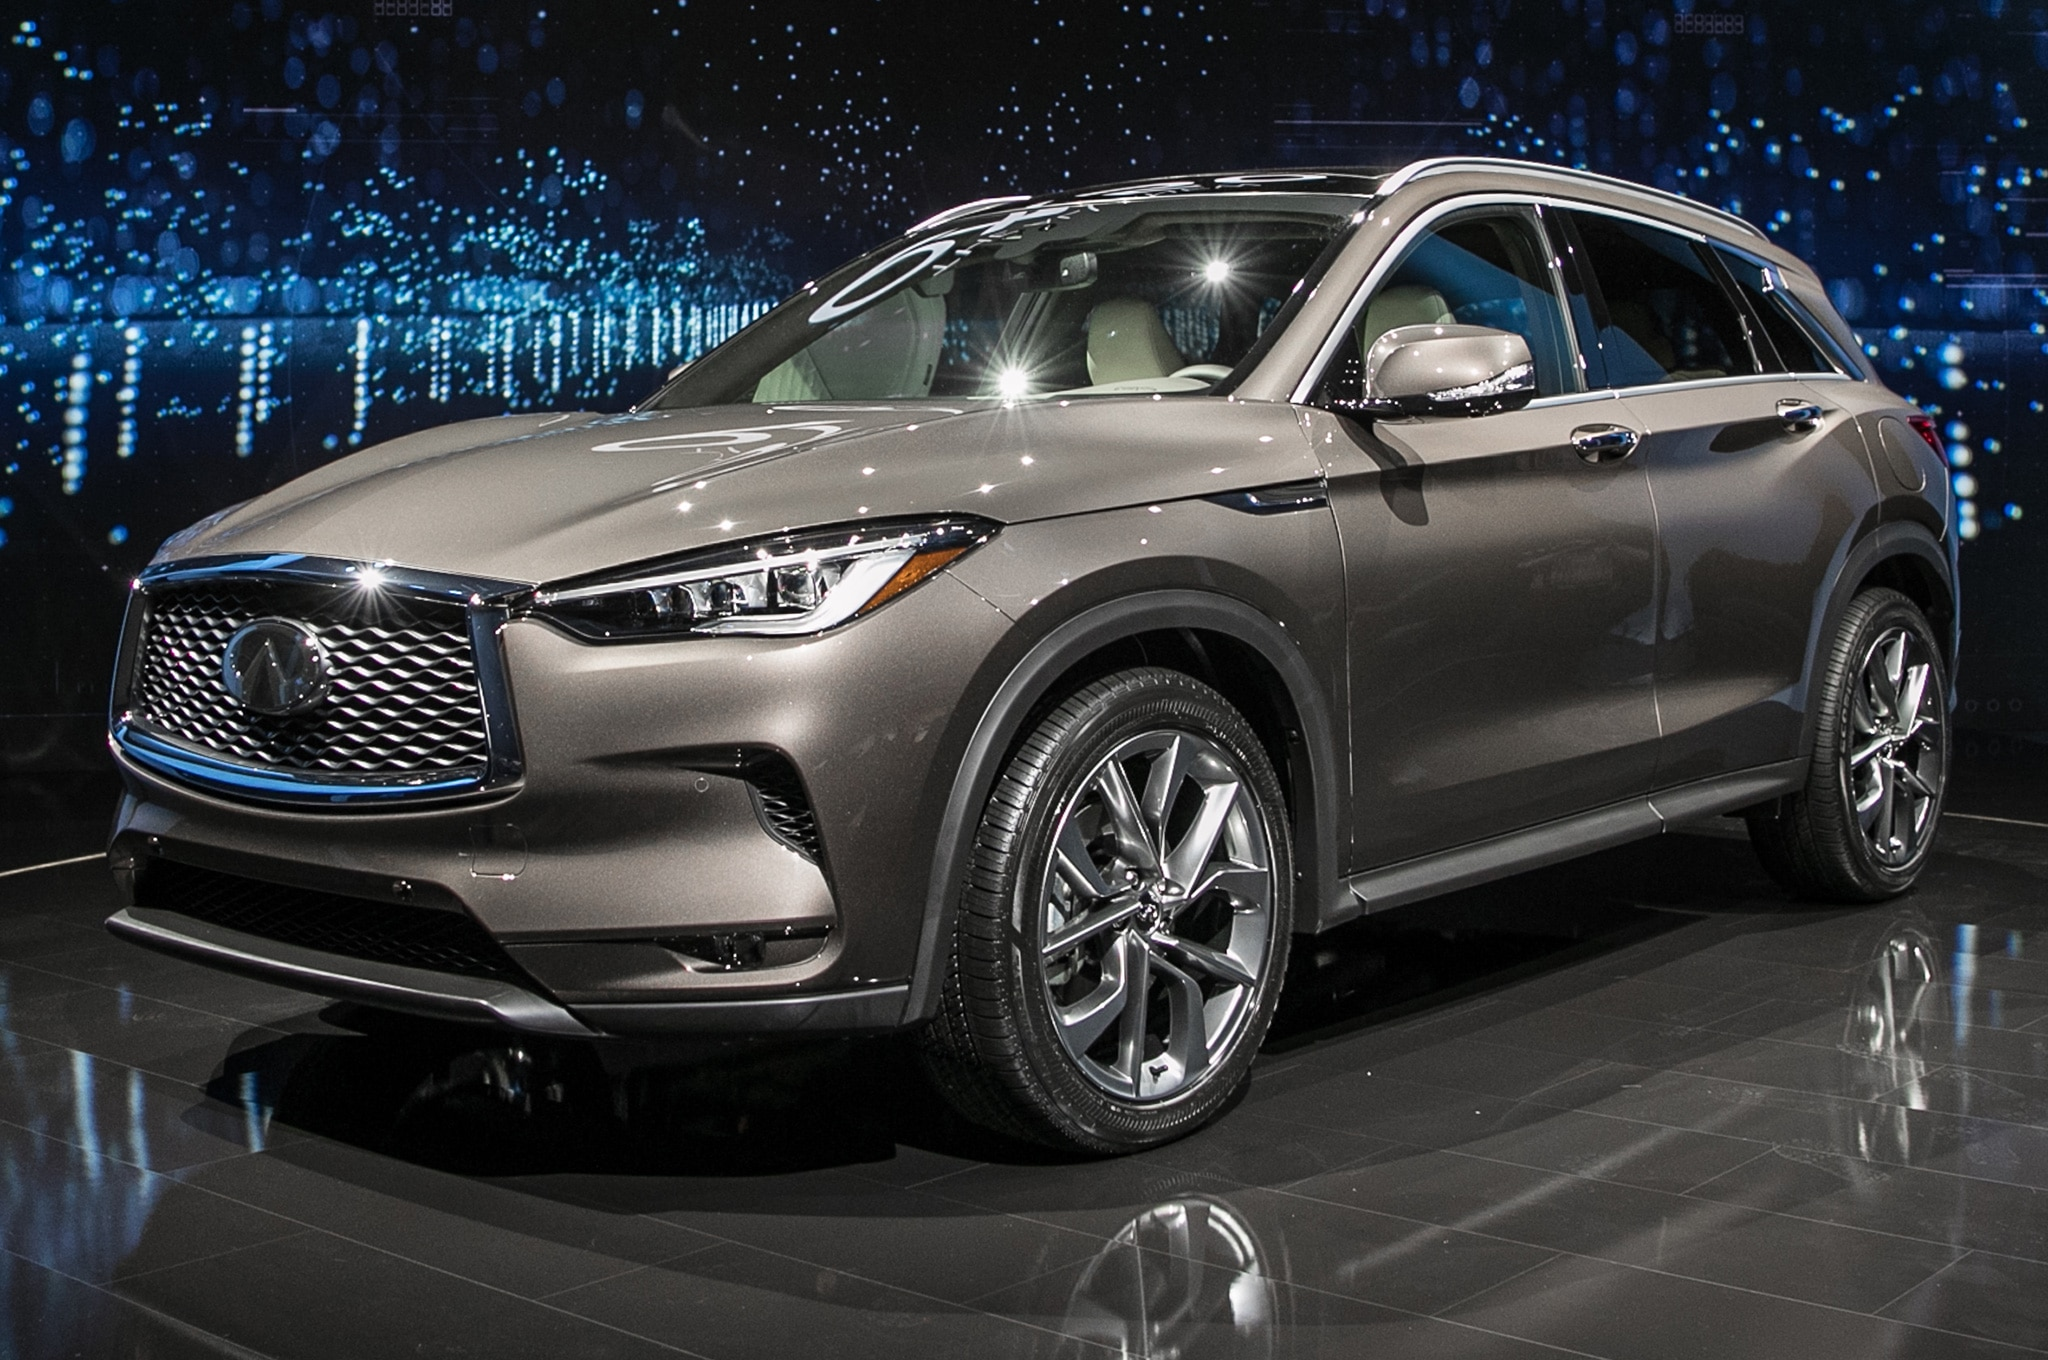 2019 Infiniti QX50: News, Specs, MPG, Price >> 2019 Infiniti Qx50 News Specs Mpg Price Best New Car